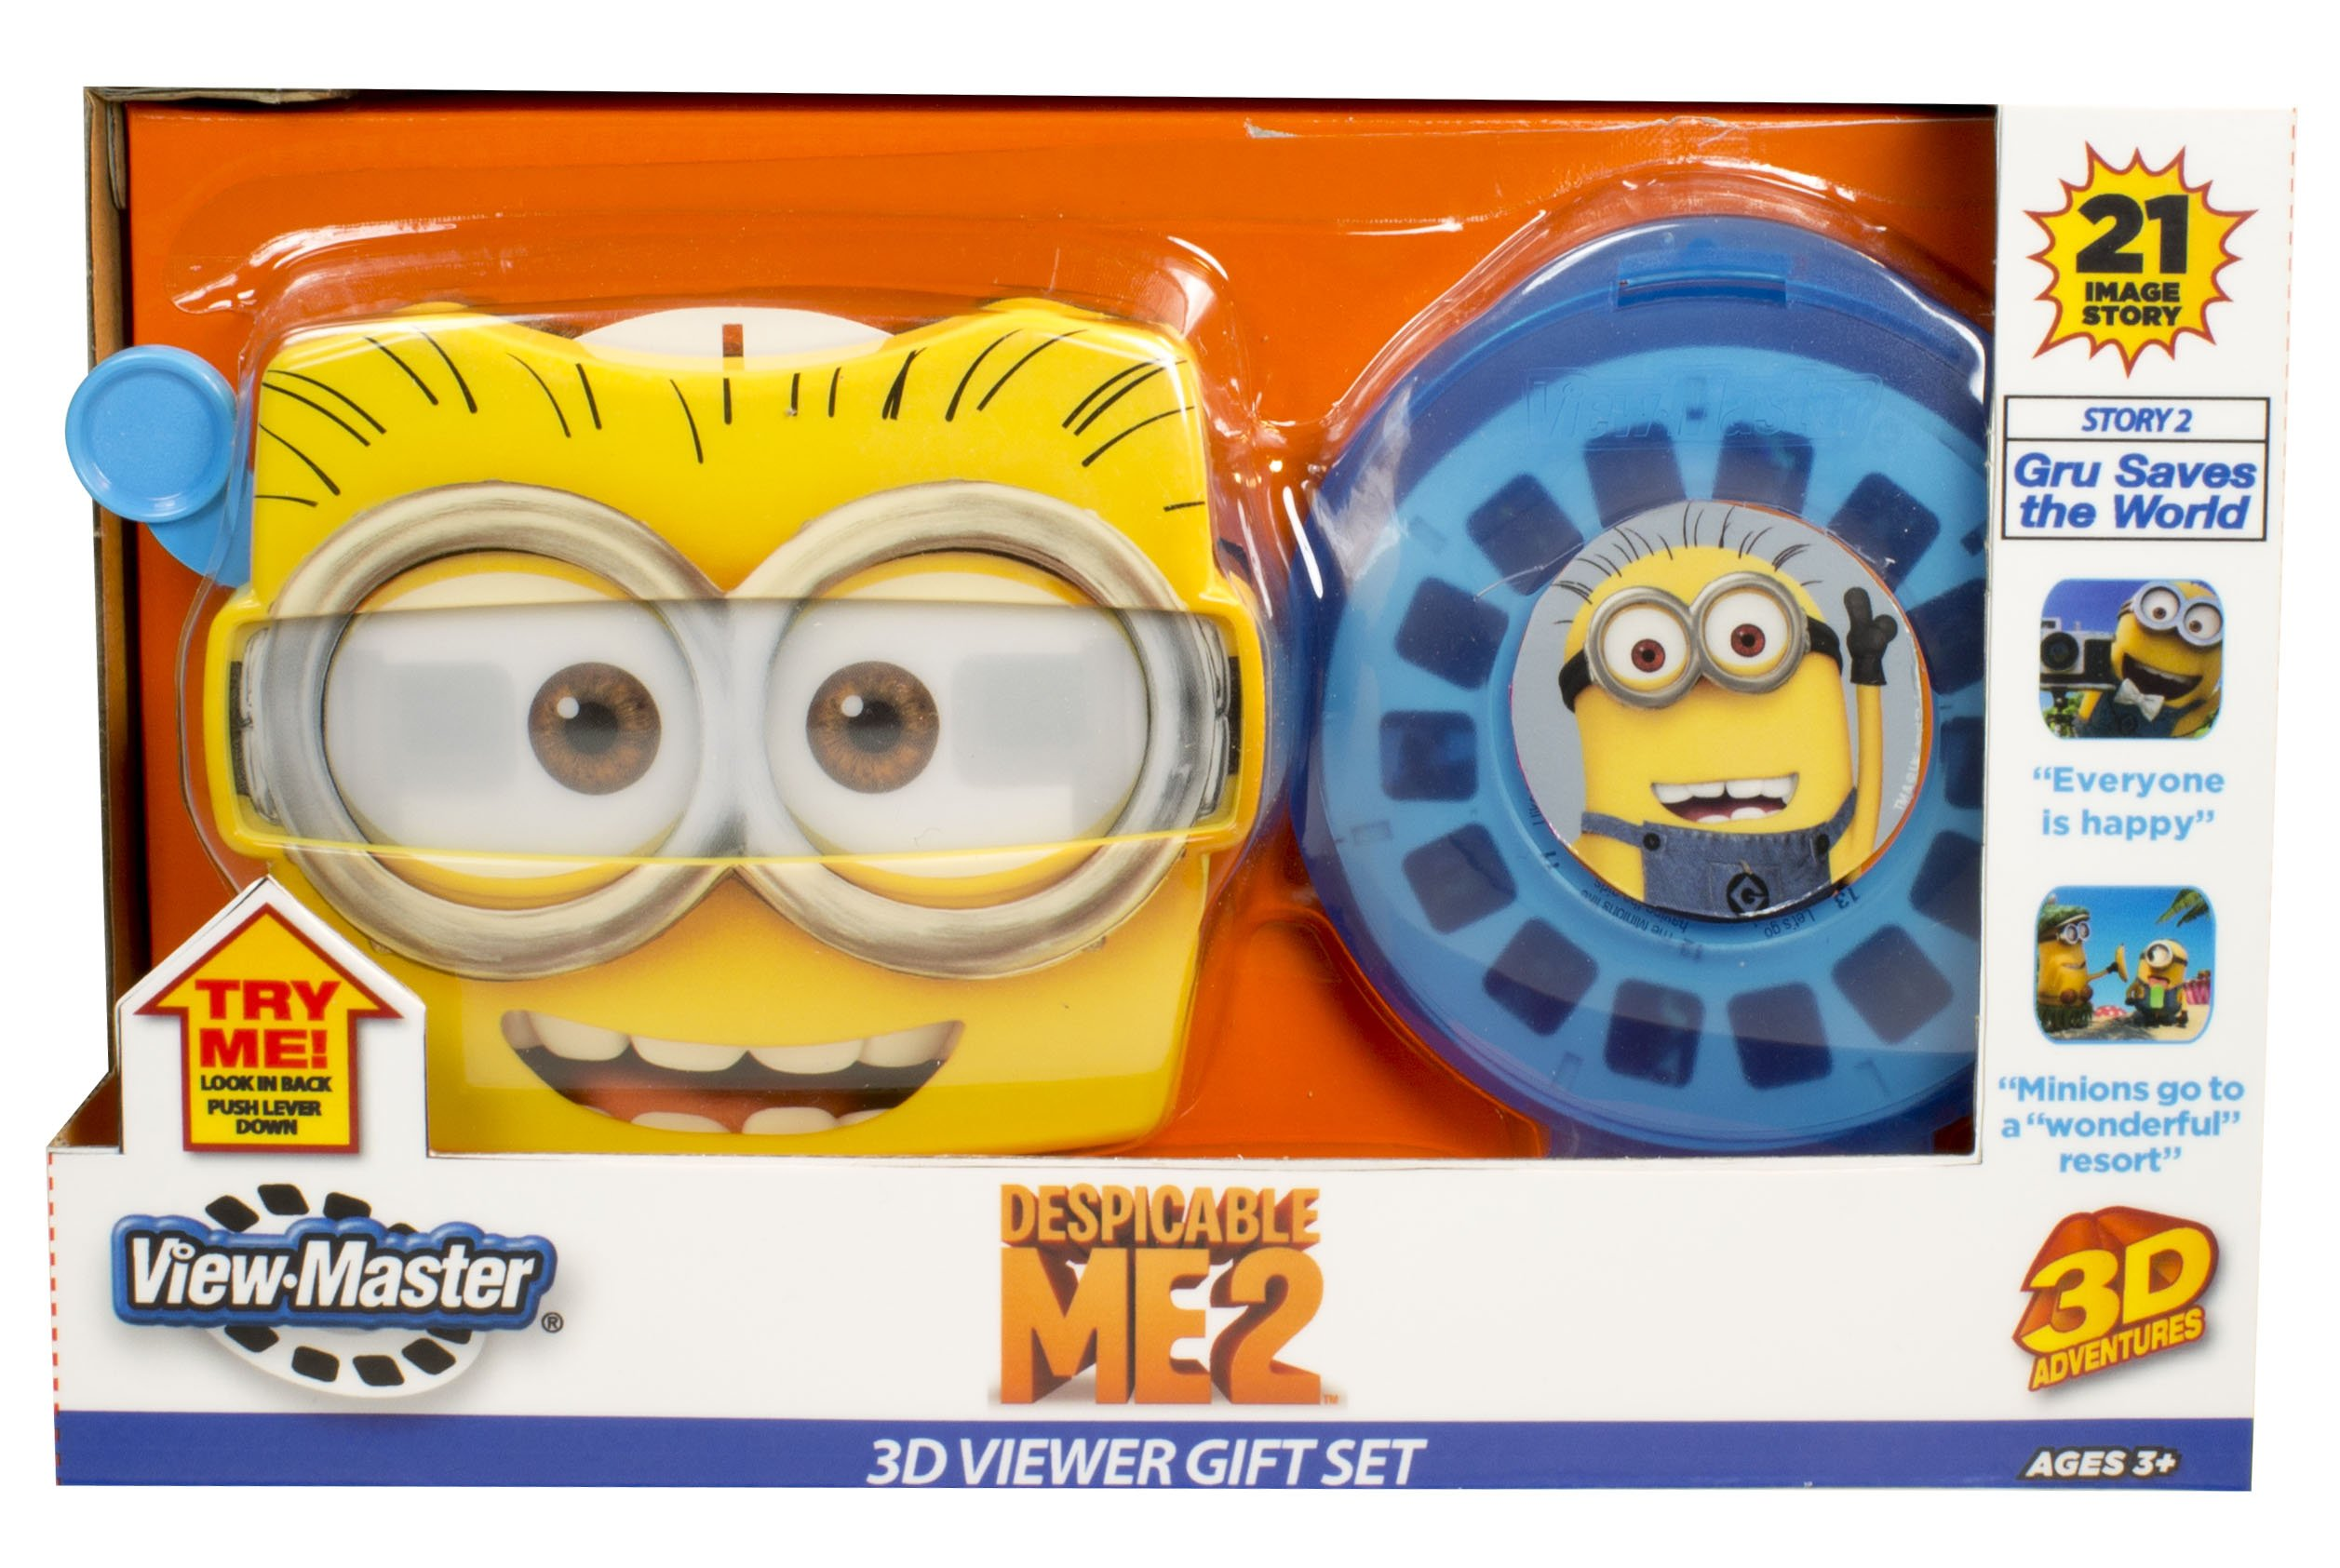 Basic Fun ViewMaster - Despicable Me Gift Set (Story 2)